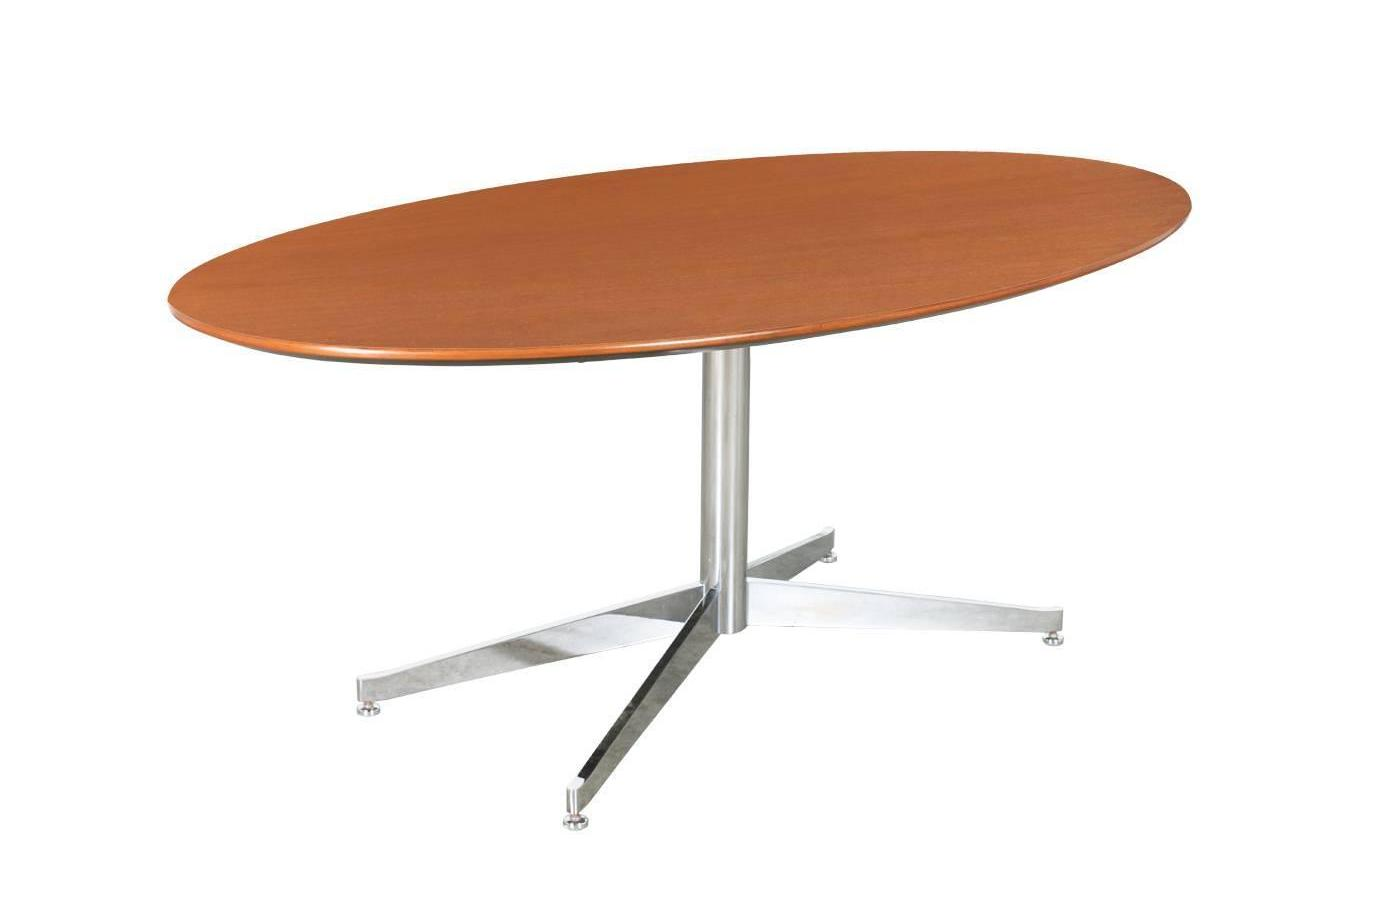 wood oval dining table pedestal base with metal legs